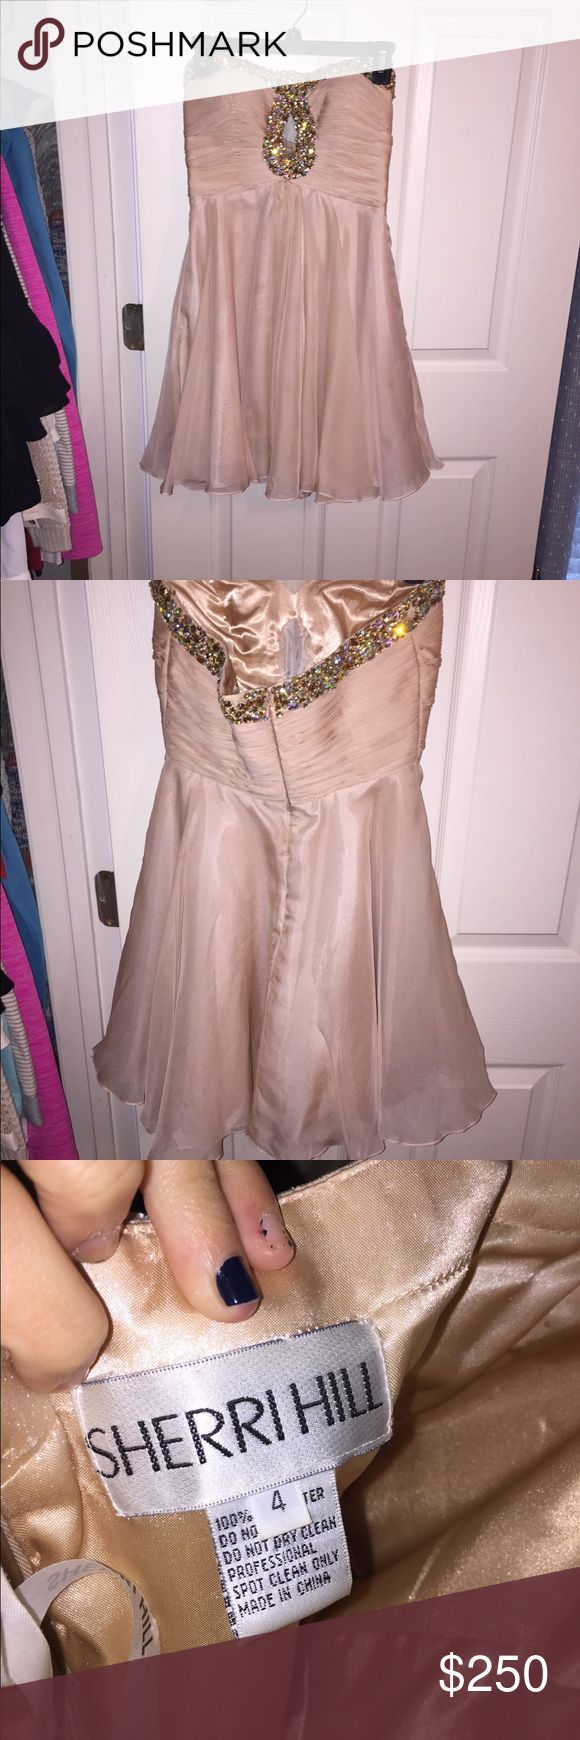 BLUSH SHERRI HILL HOMECOMING DRESS Worn once! Perfect condition! Sherri Hill strapless homecoming dress with mesh cutout. Blush color. Sequined along the top. Price negotiable Sherri Hill Dresses Mini